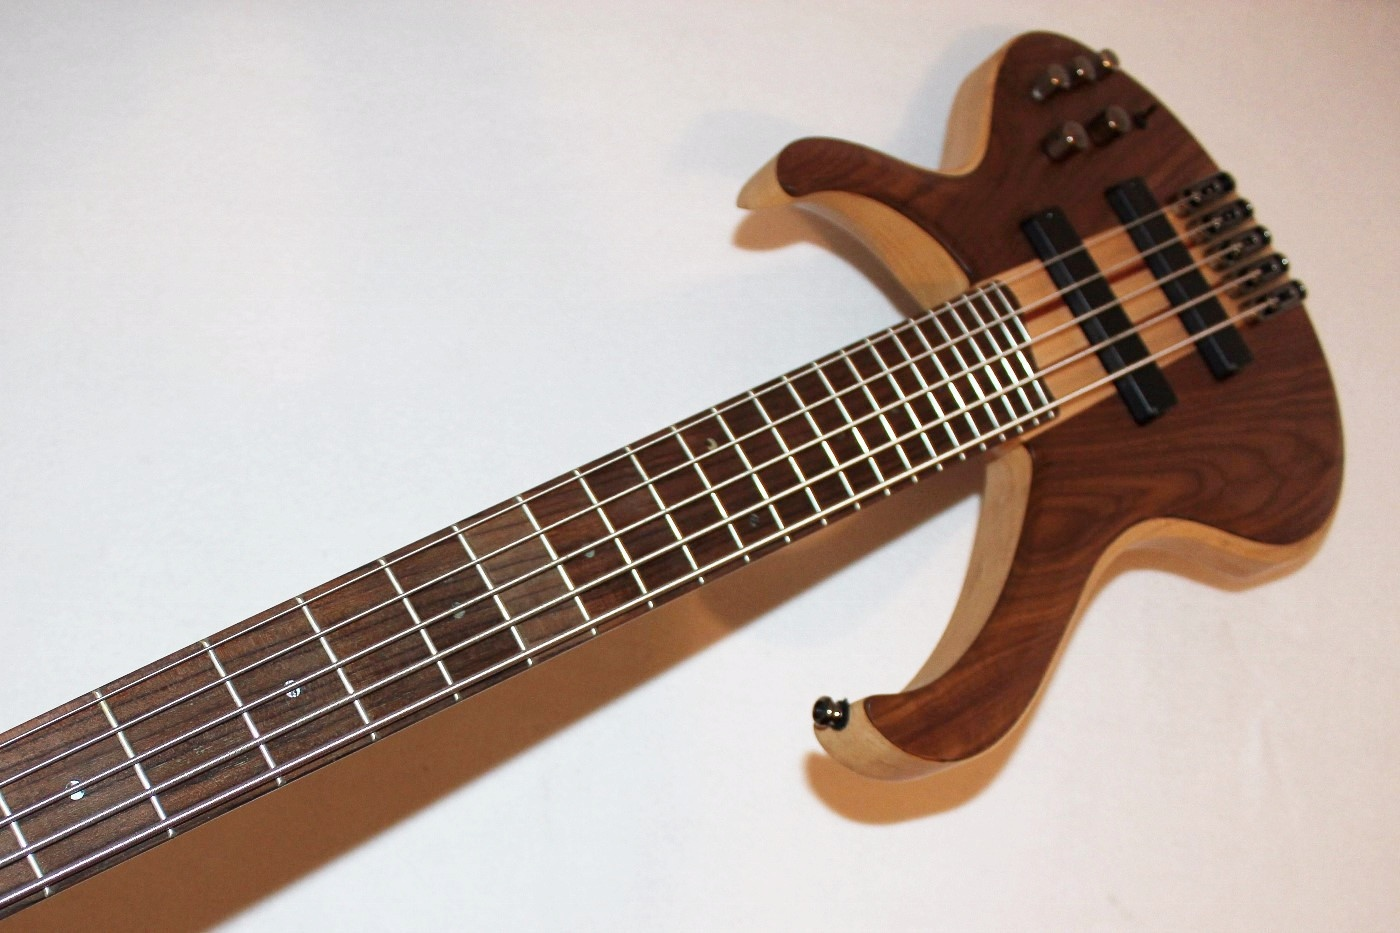 ibanez btb675 5 string electric bass guitar ebay. Black Bedroom Furniture Sets. Home Design Ideas